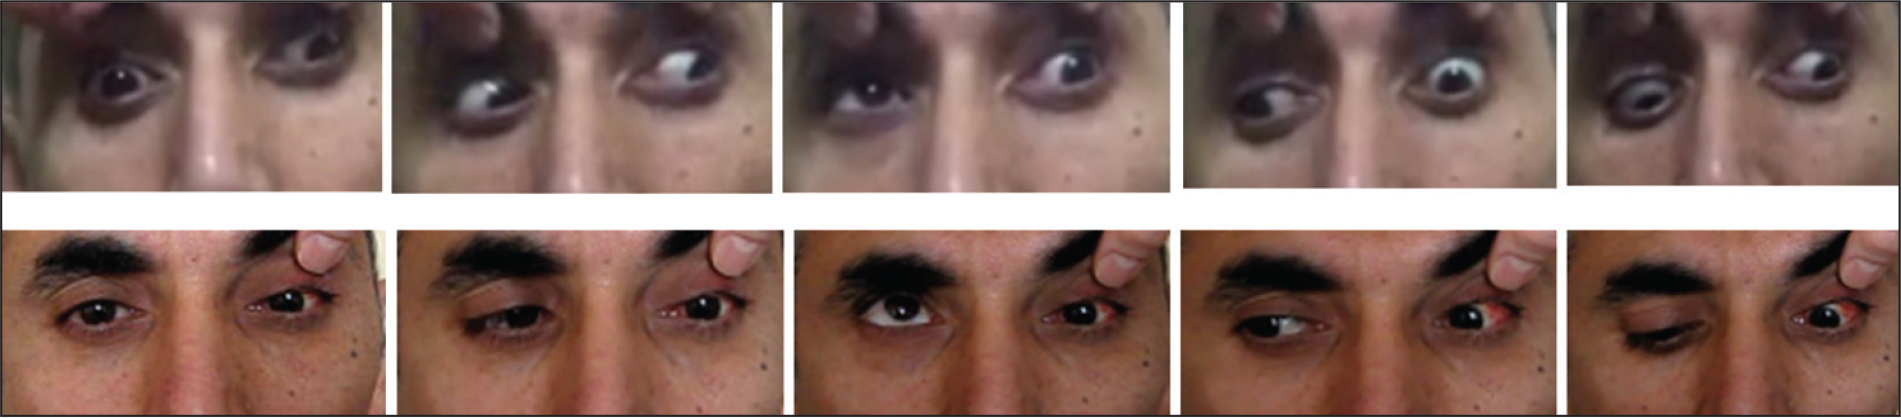 Preoperative (top) and postoperative (bottom) five gaze ocular motility of a patient who underwent medial transposition of split lateral rectus muscle surgery due to chronic total oculomotor nerve palsy in the left eye.